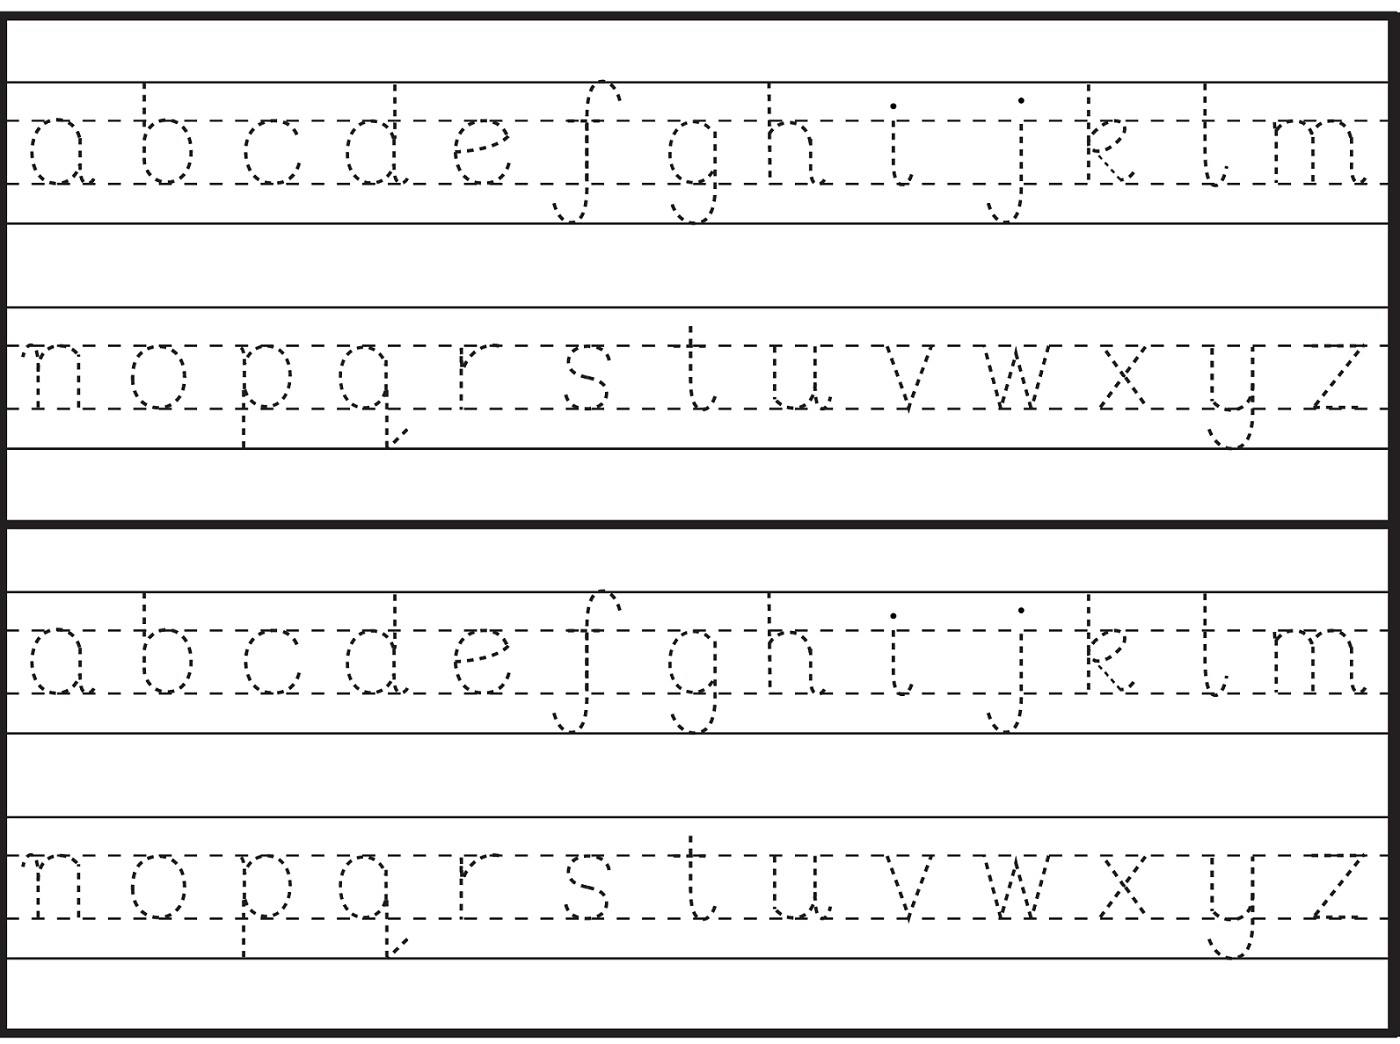 English Alphabet Worksheet For Kindergarten | Letter Tracing pertaining to Interactive Tracing Letters Online